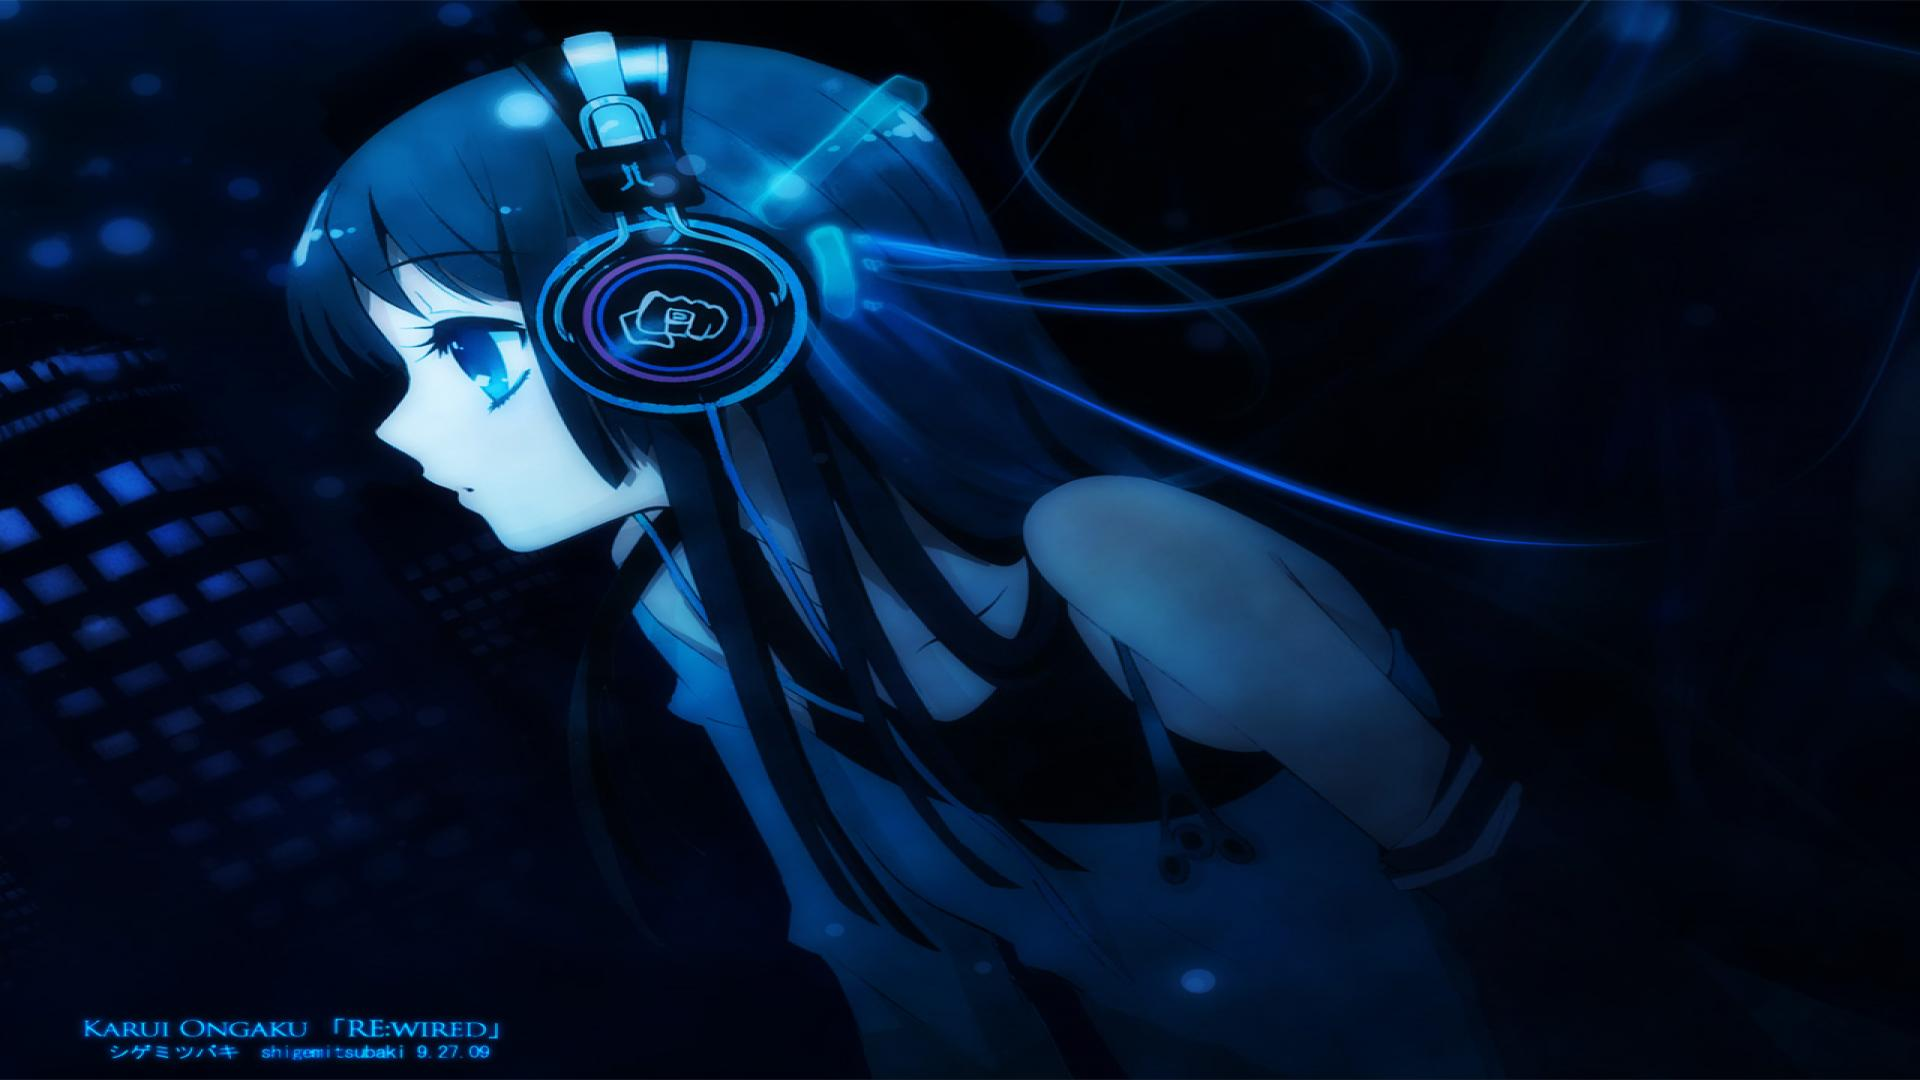 Best Anime HD Wallpapers 1920x1080 Anime Wallpapers 1920x1080 Download 1920x1080